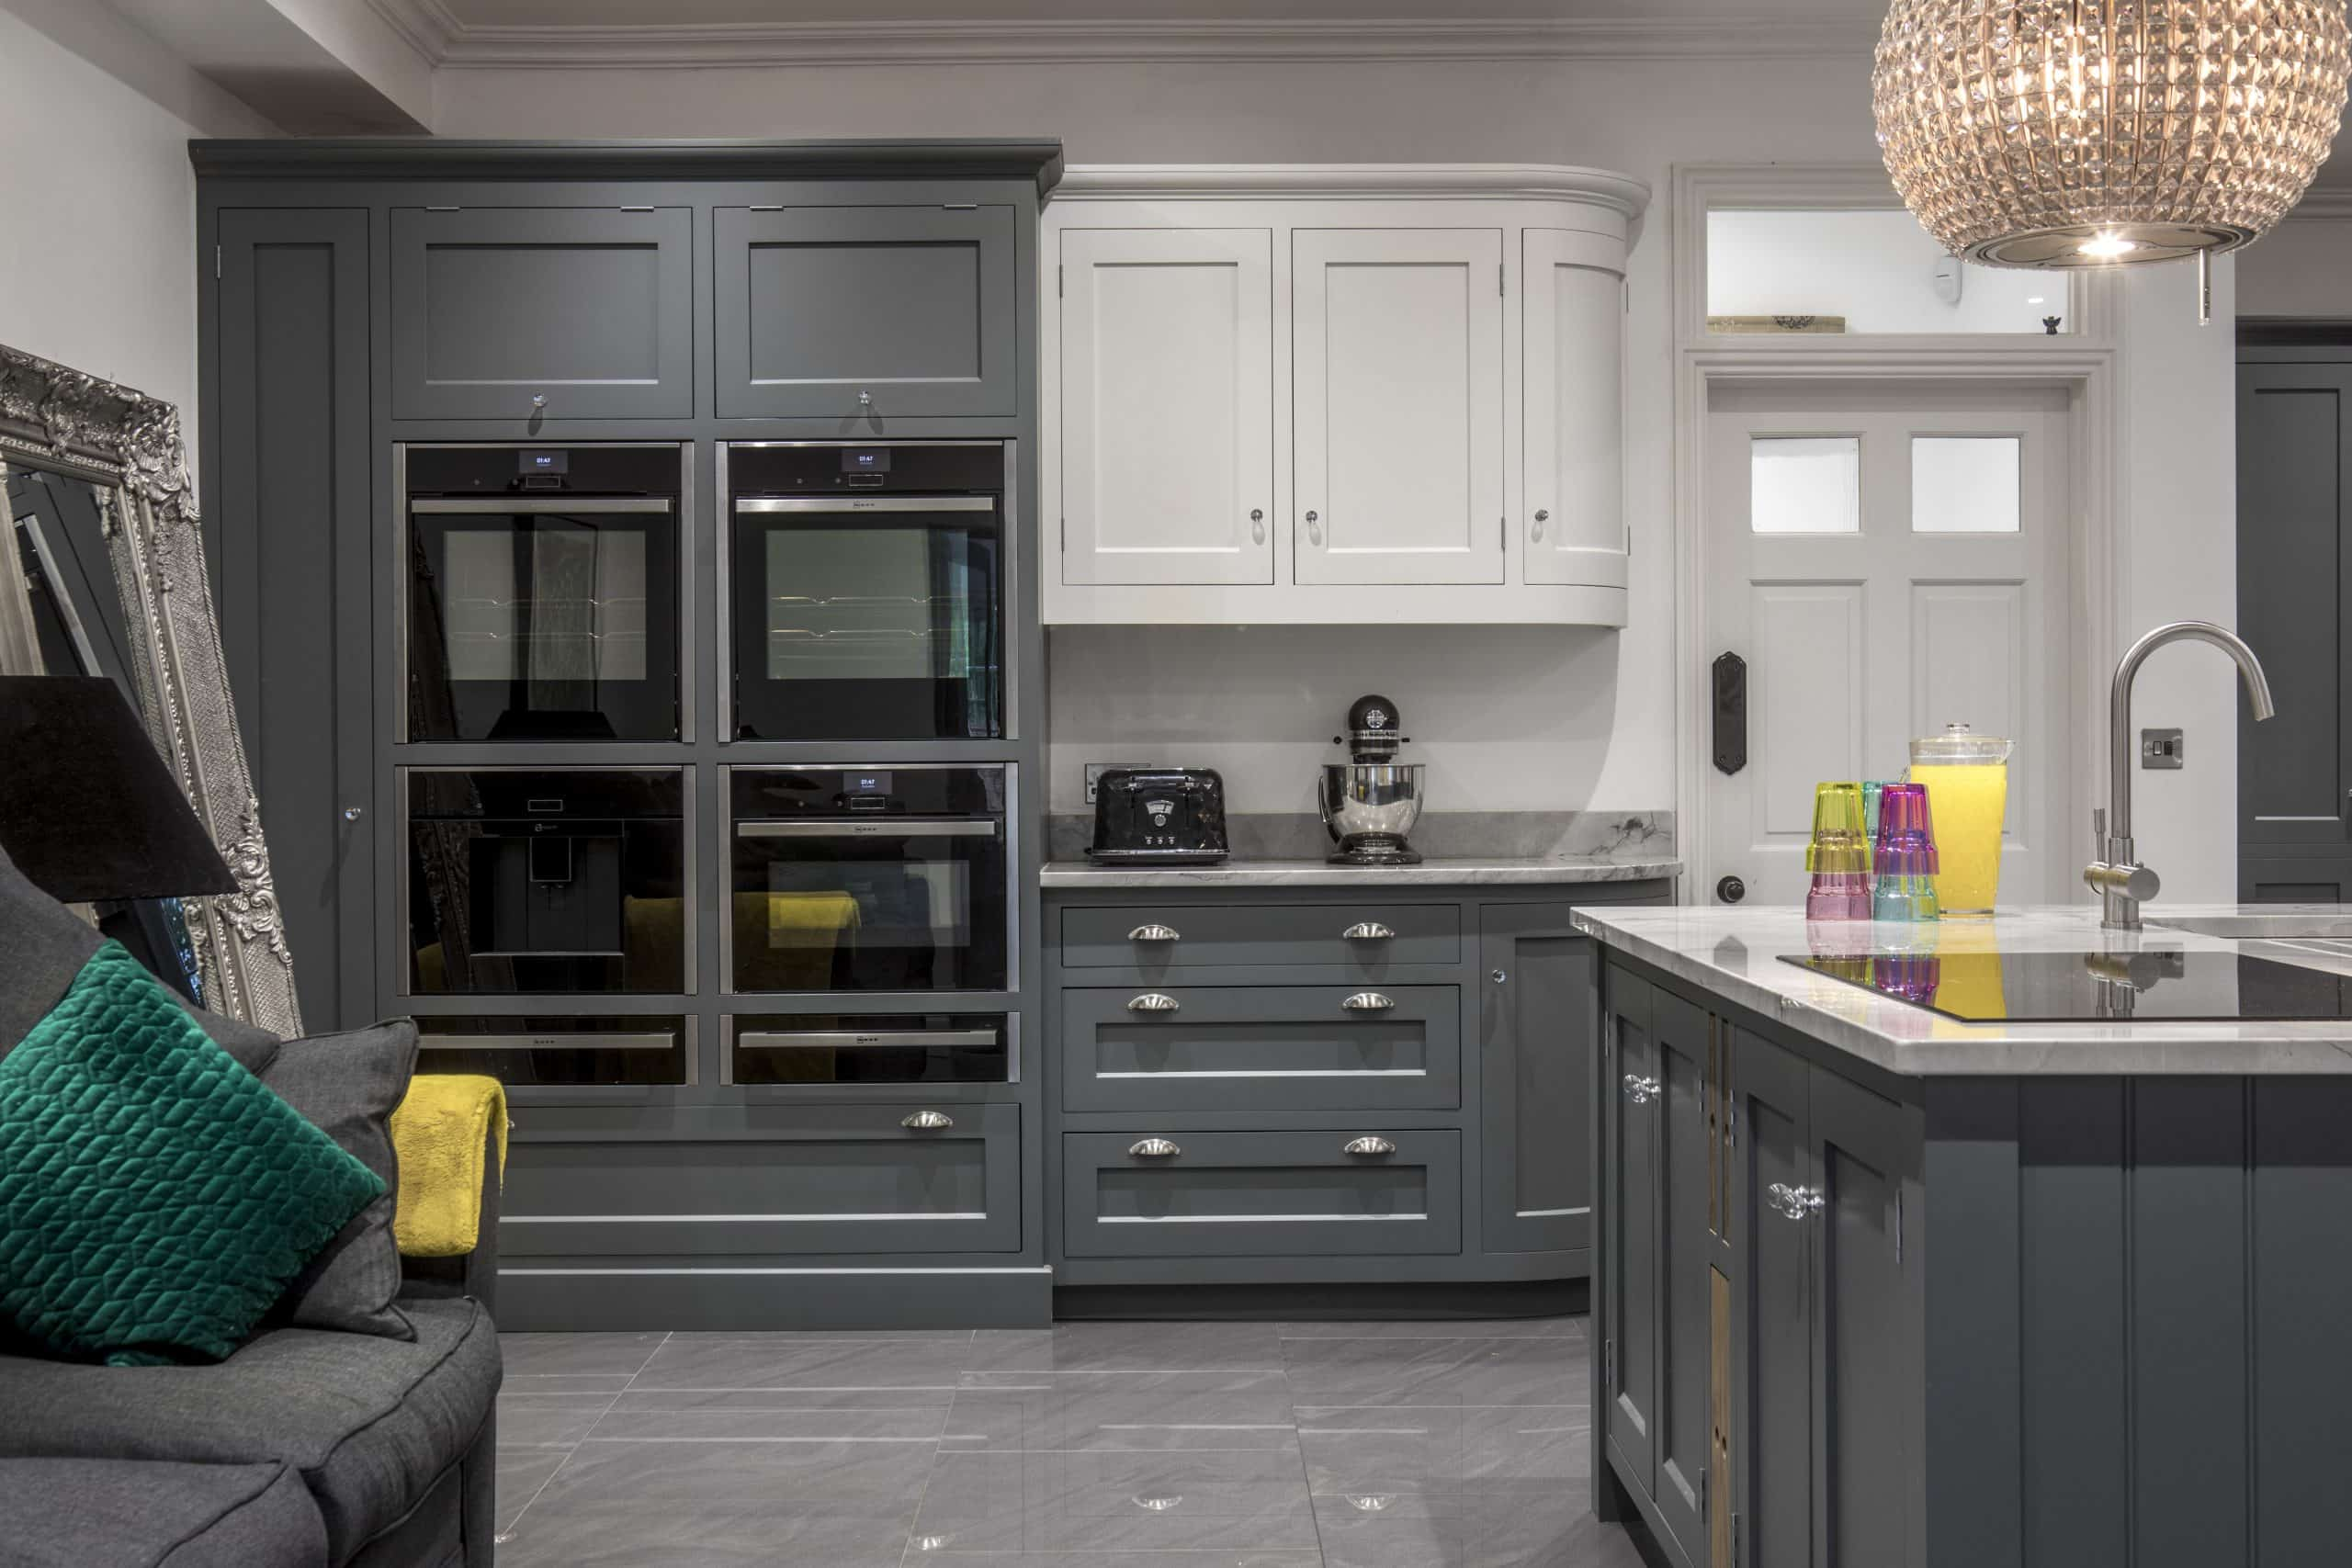 A beautiful, bespoke kitchen with a marble floor